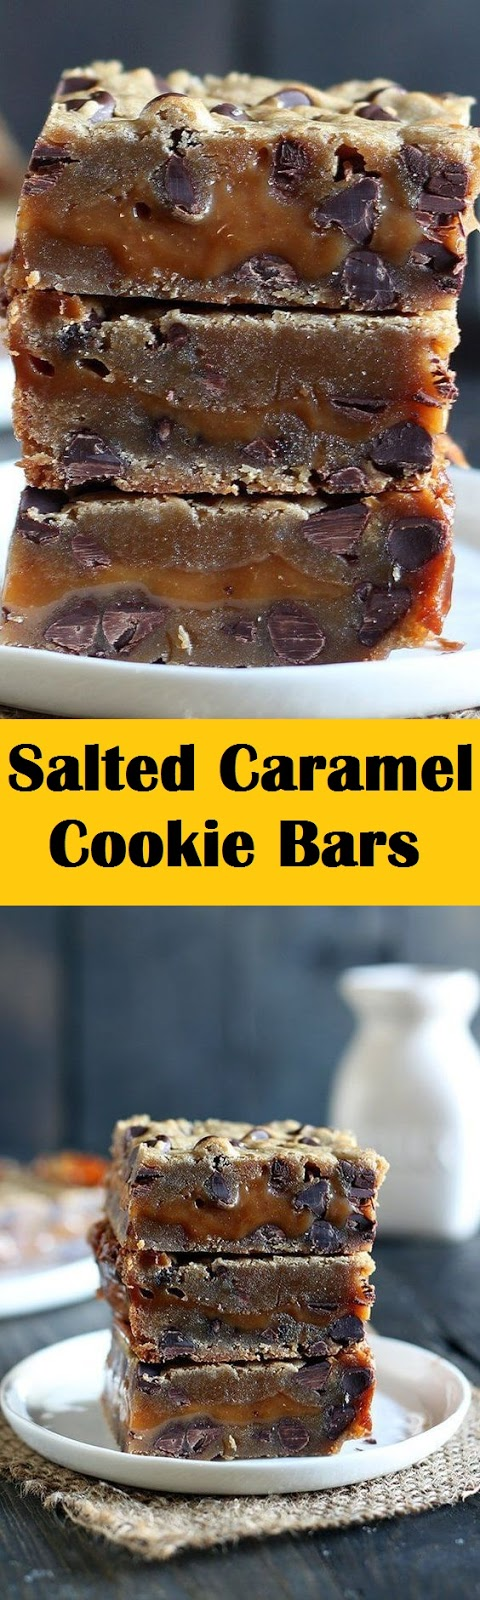 Salted Caramel Cookie Bars